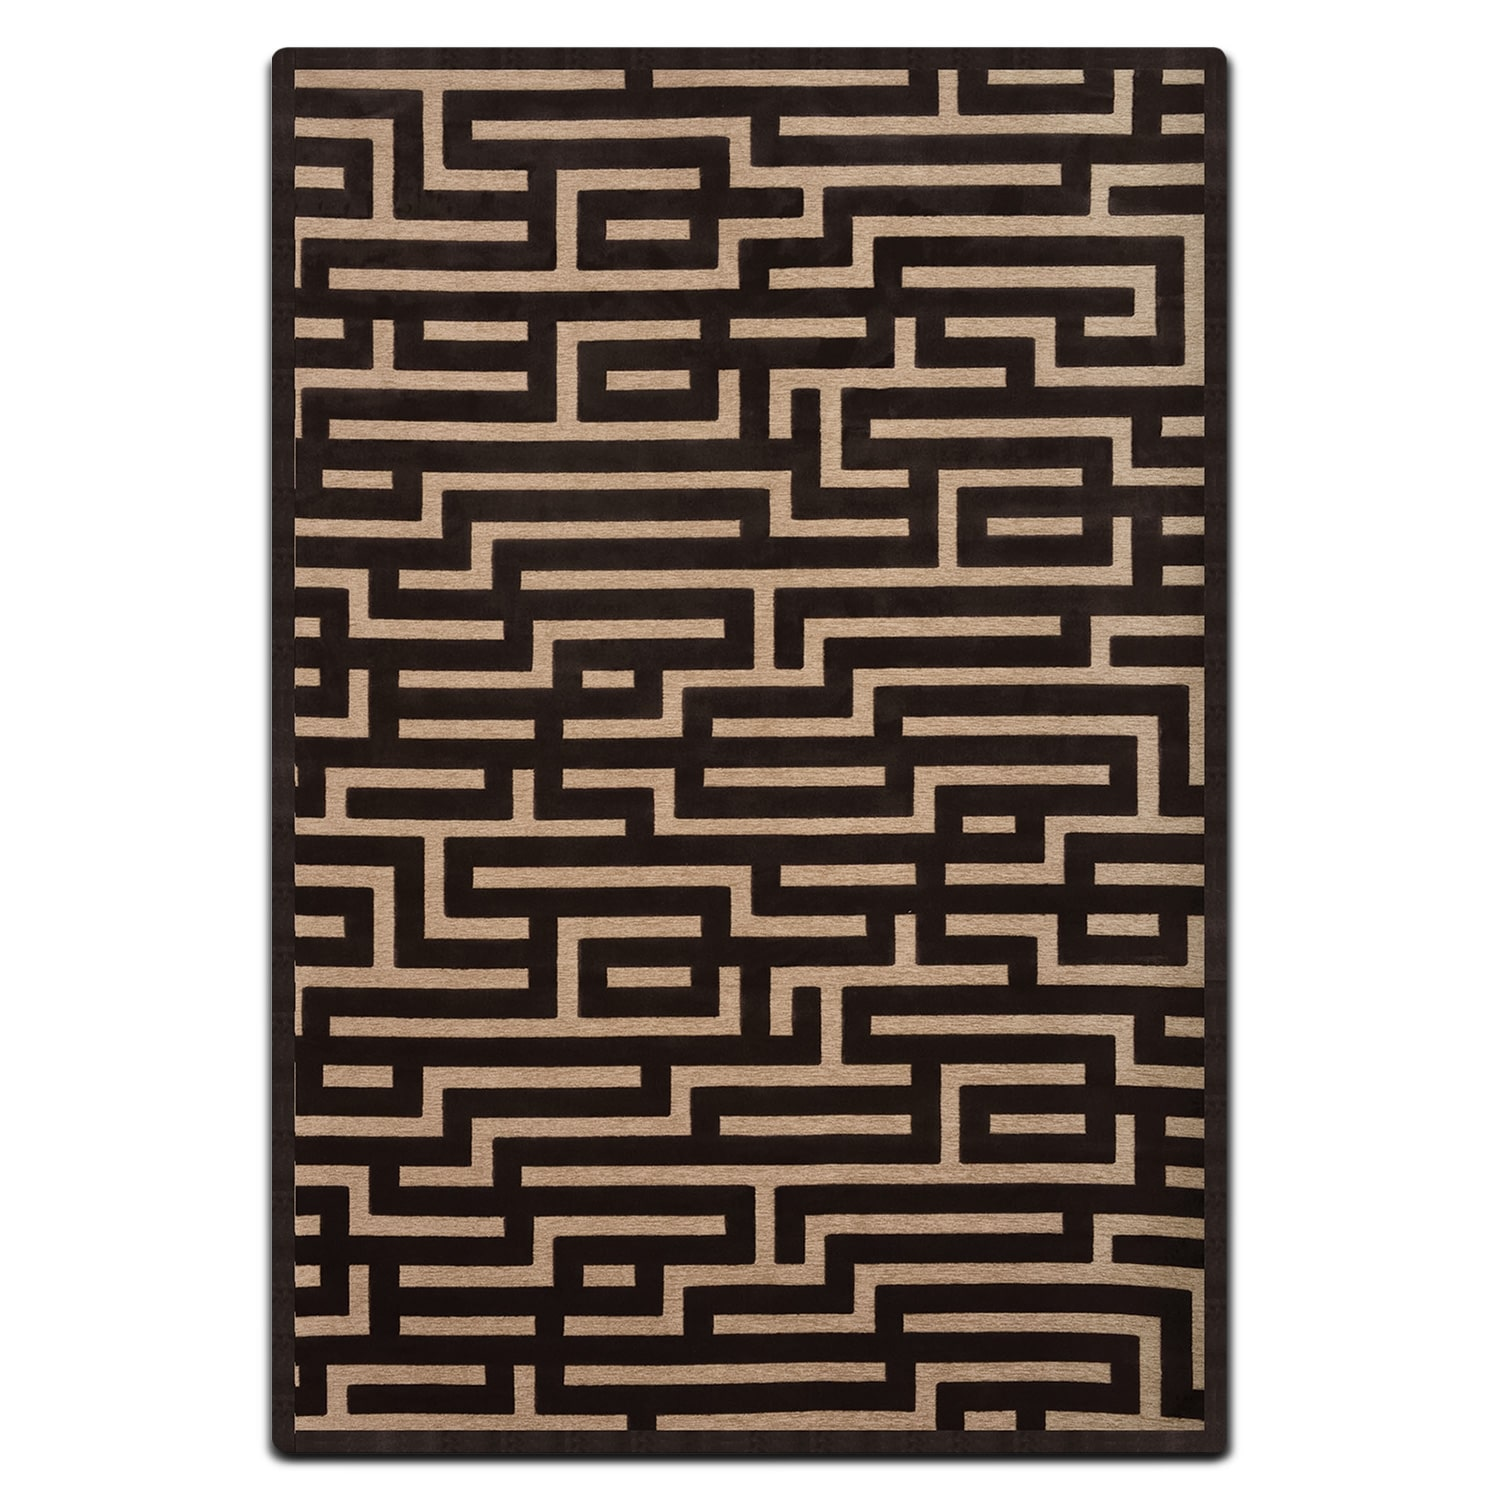 Rugs - Napa 5' x 8' Area Rug - Charcoal and Beige